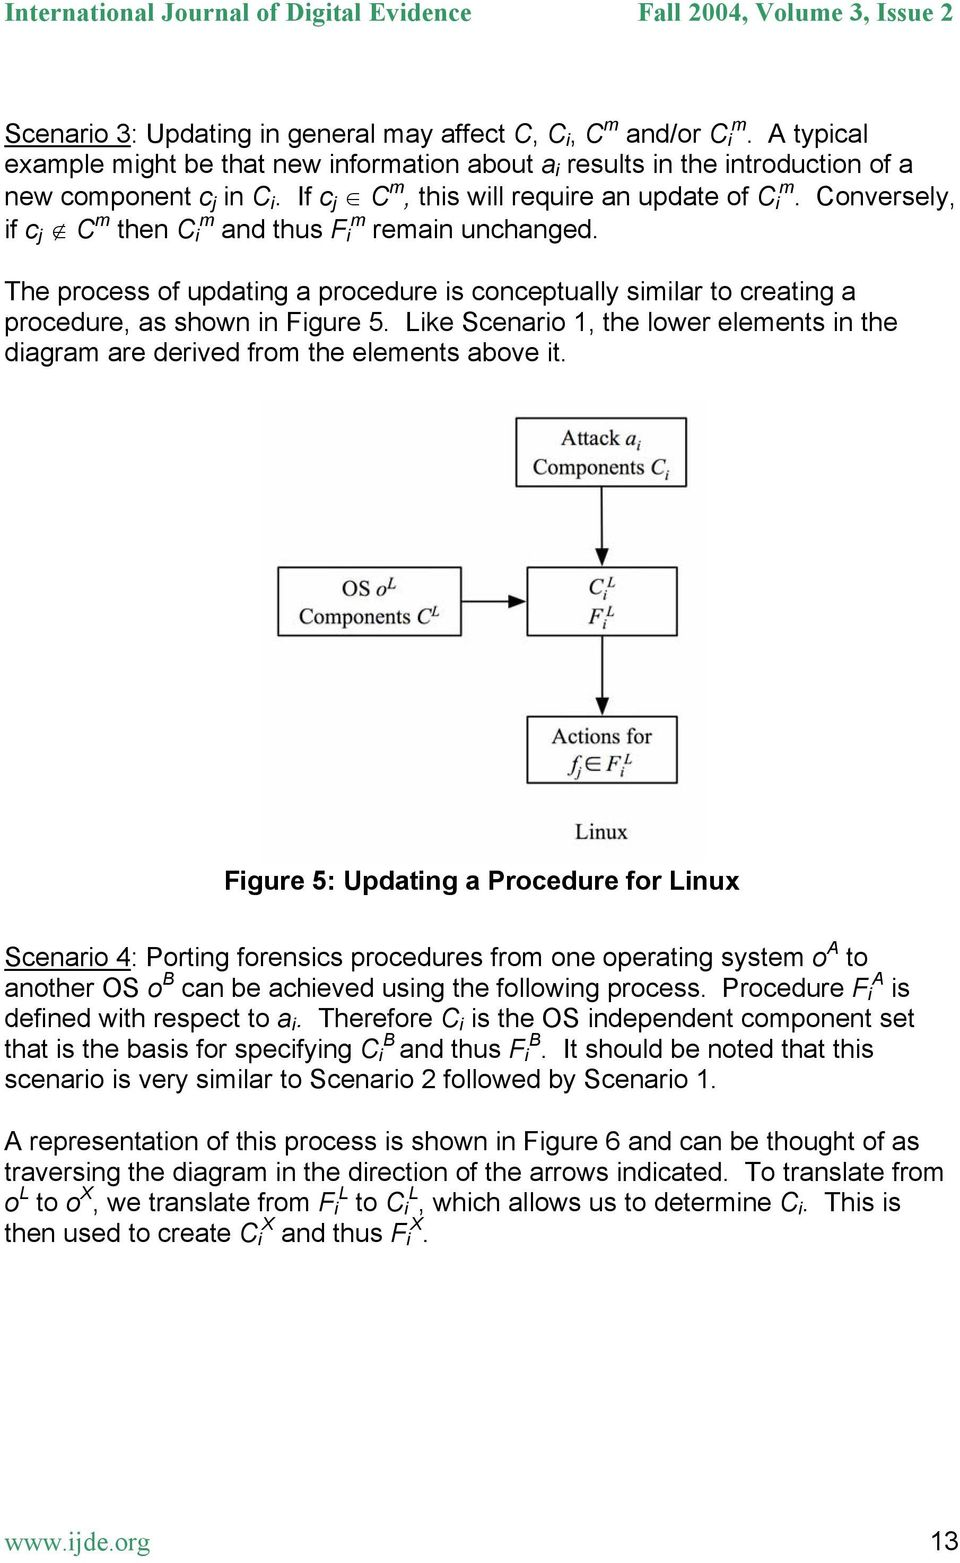 The process of updating a procedure is conceptually similar to creating a procedure, as shown in Figure 5. Like Scenario 1, the lower elements in the diagram are derived from the elements above it.